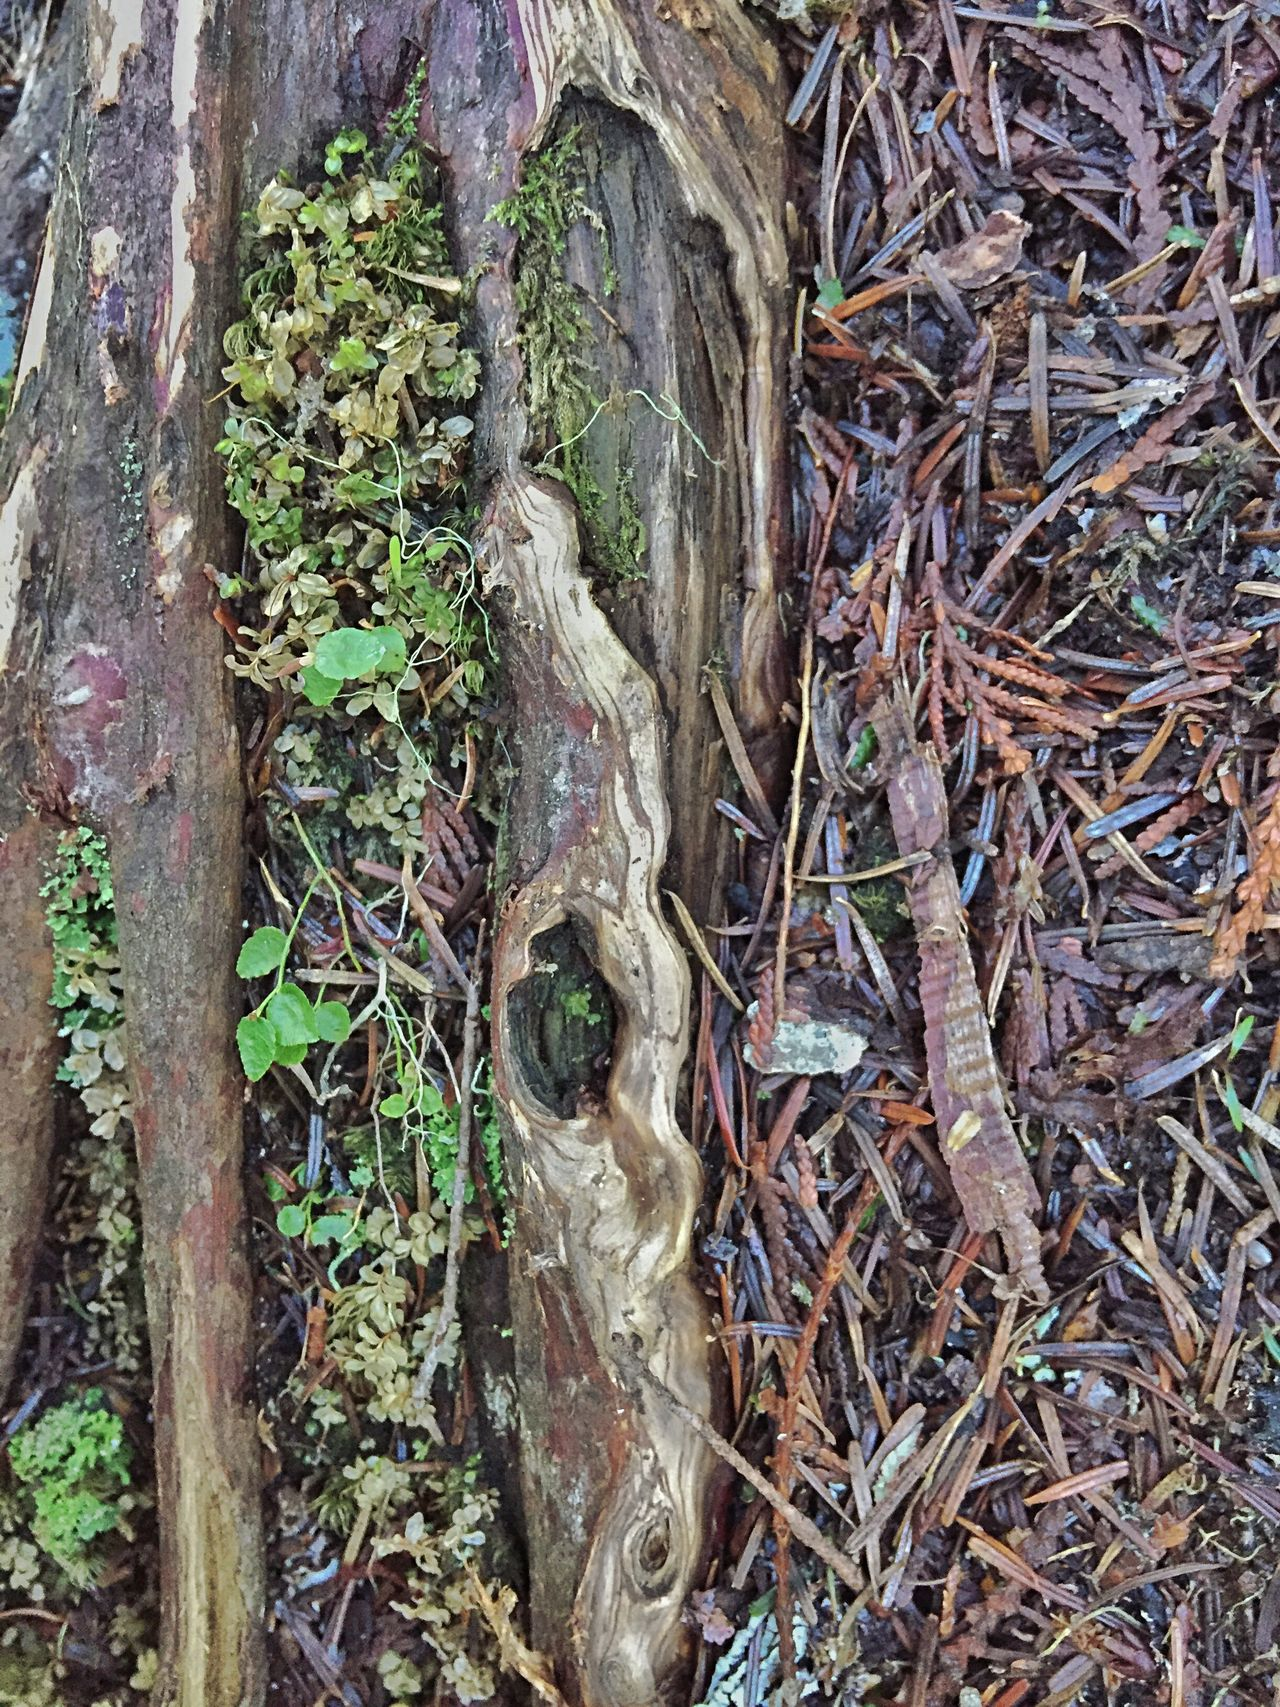 Nature Outdoors Growth Tree Trunk Close-up Tree Wood Textured  Shapes In Nature  Beauty In Nature Scenery Abstractions In Nature Layers And Textures